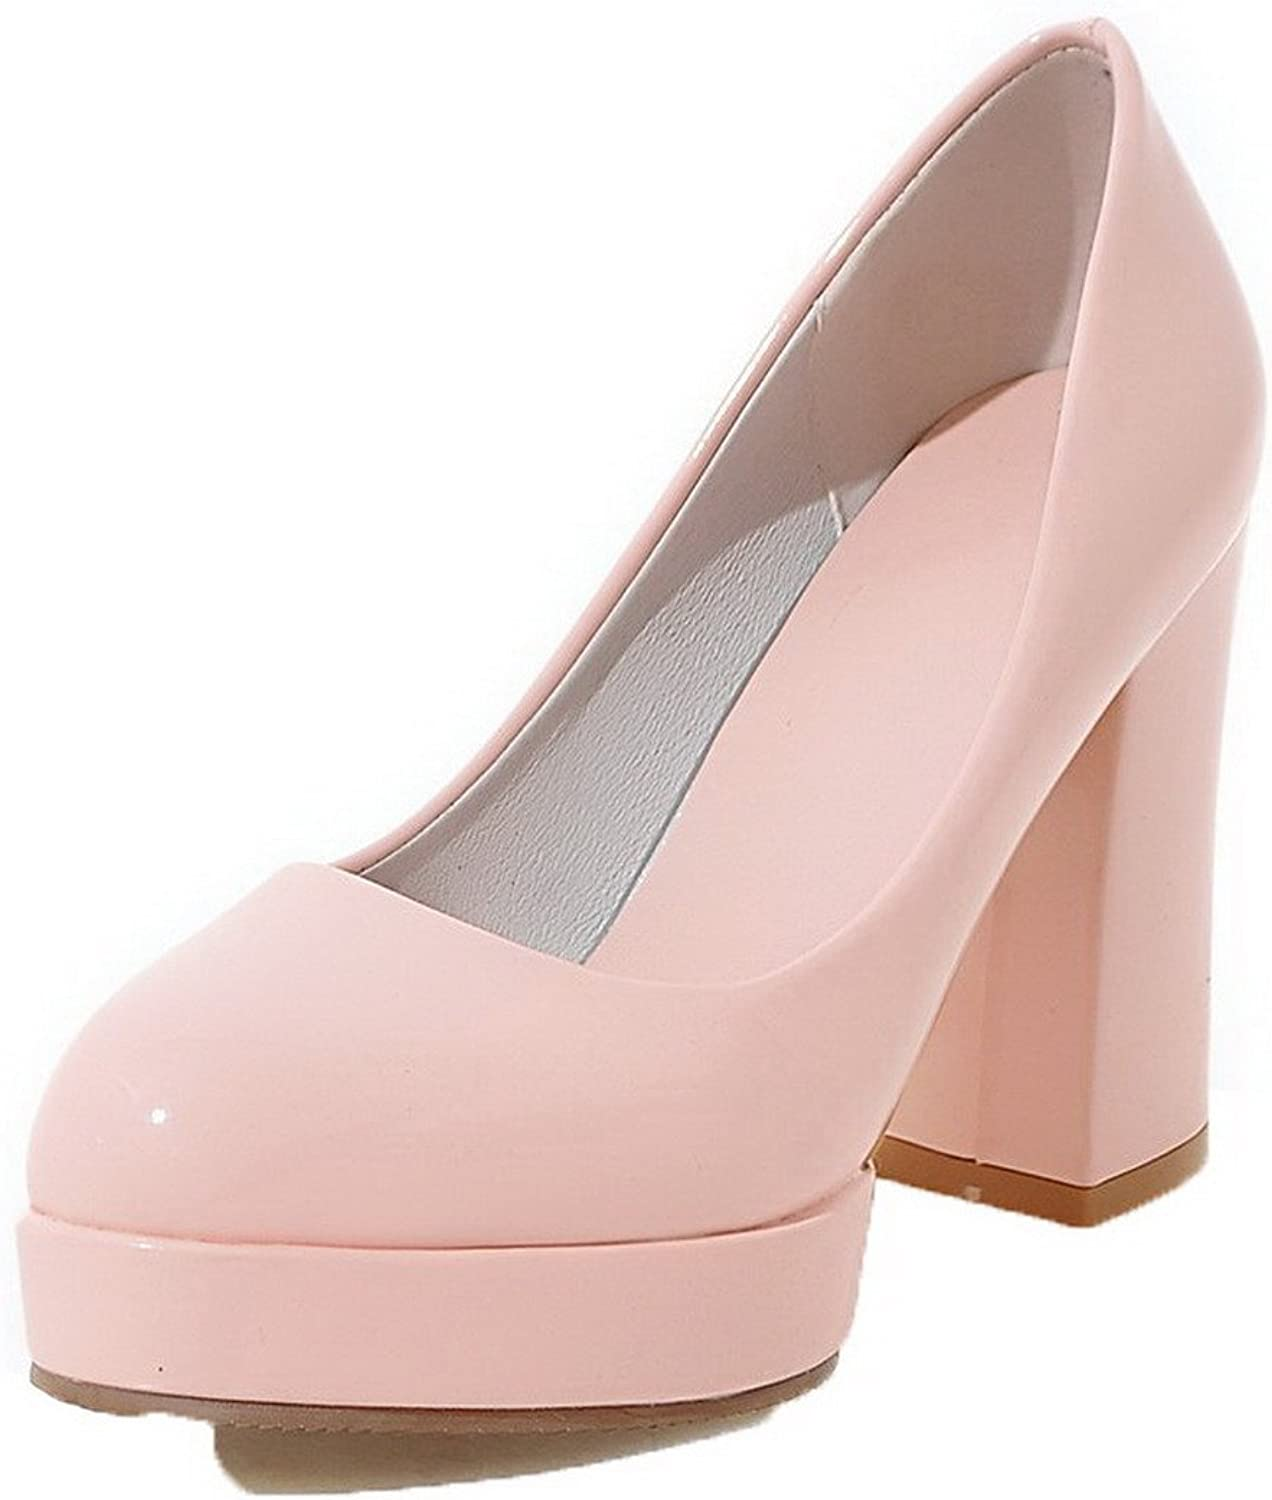 AmoonyFashion Women's Round Closed Toe Pull-On Patent Leather Solid Pumps-shoes,BUSDT003125